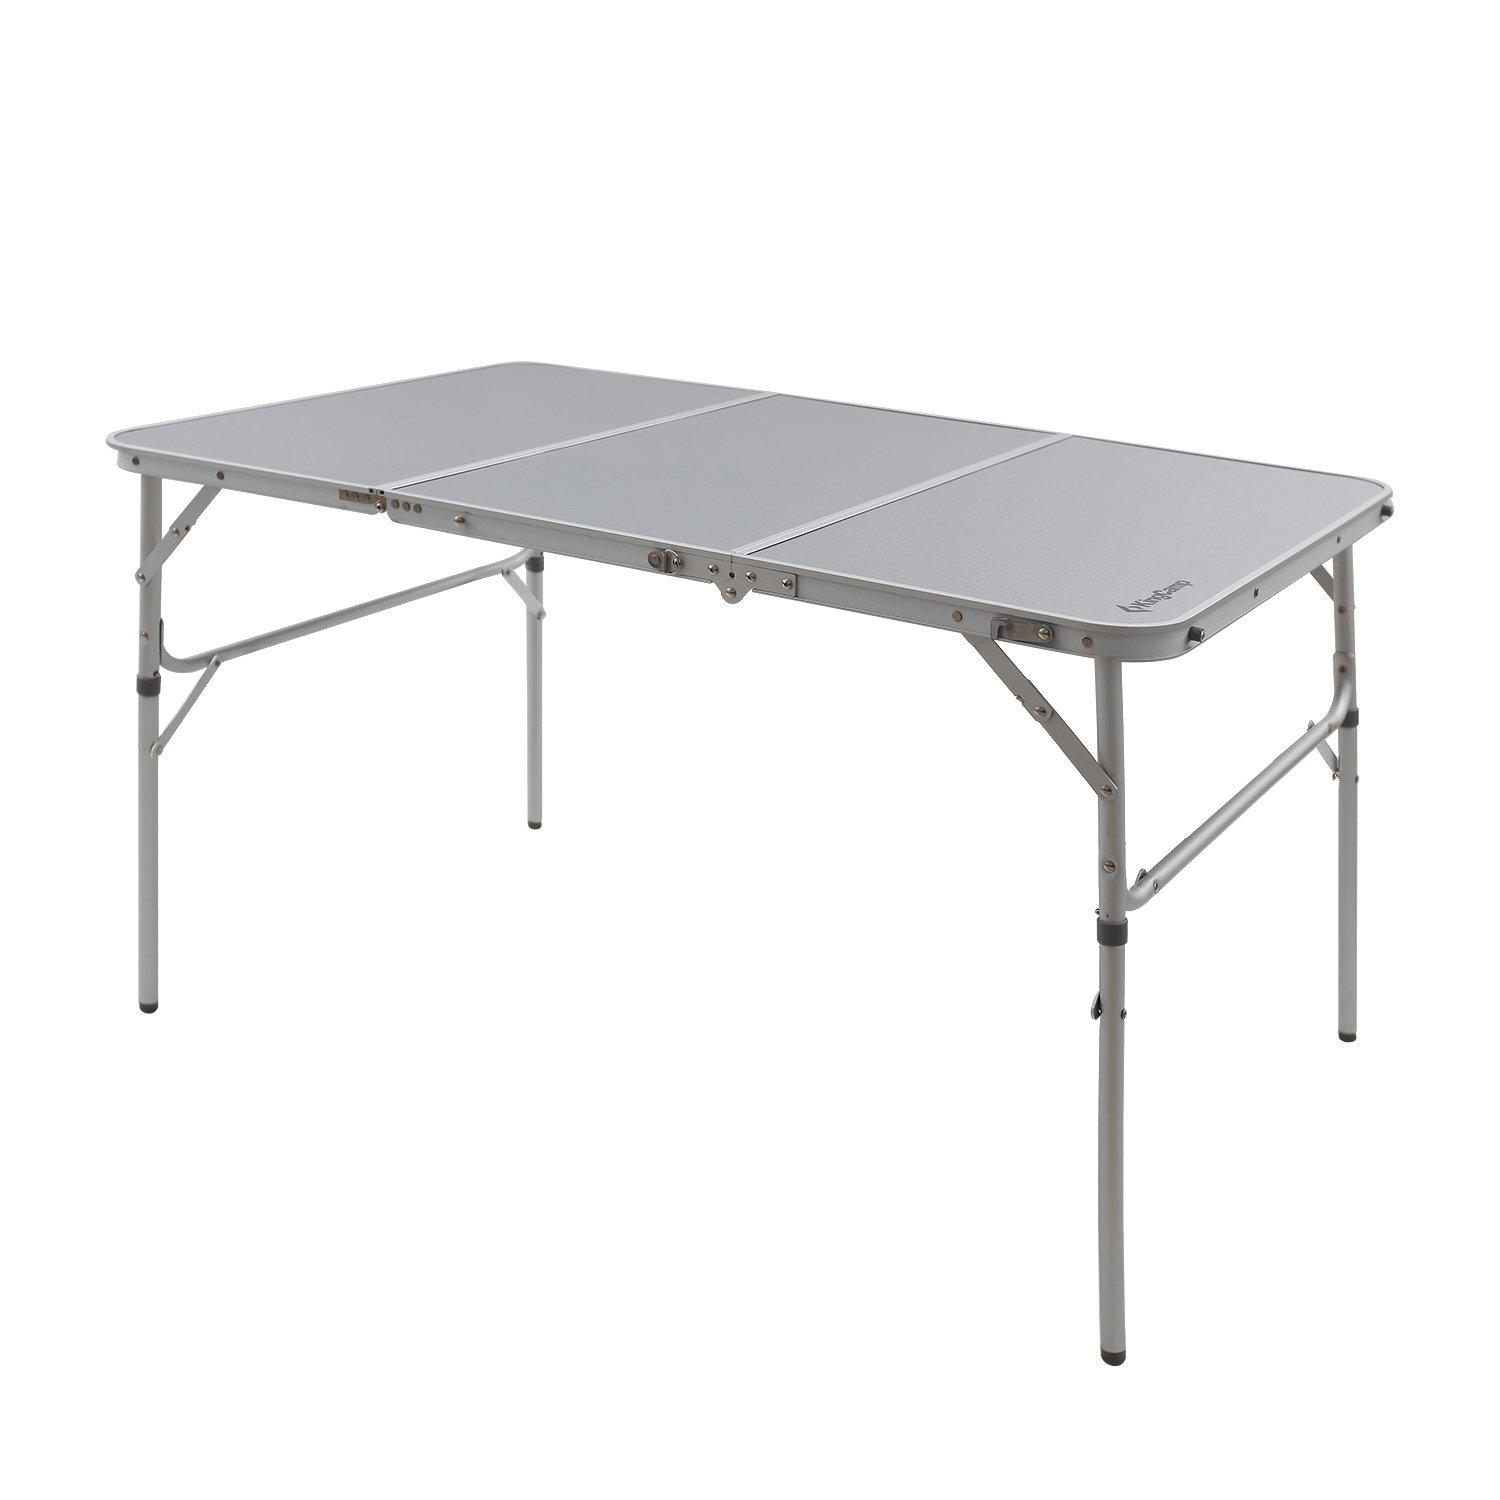 KingCamp Aluminum Alloy 3-Fold Camp Table with Carry Bag Adjustable Height Light Weight... by Kingcamp